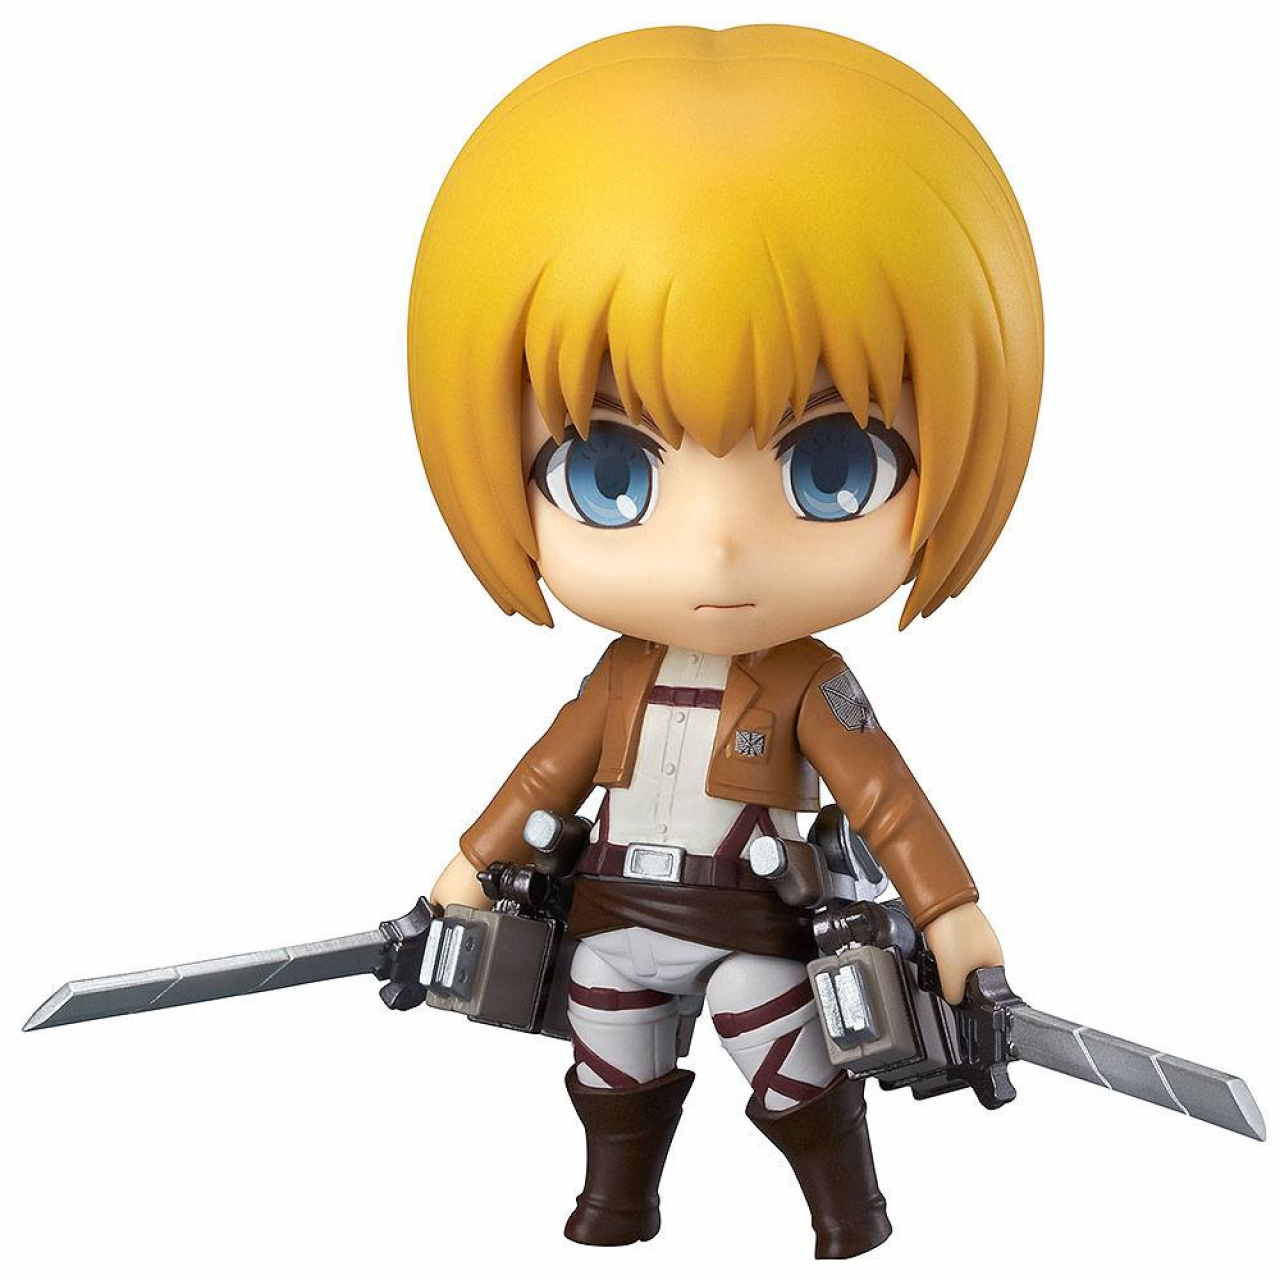 Attack on Titan Nendoroid Action Figure Armin Arlert 10 cm